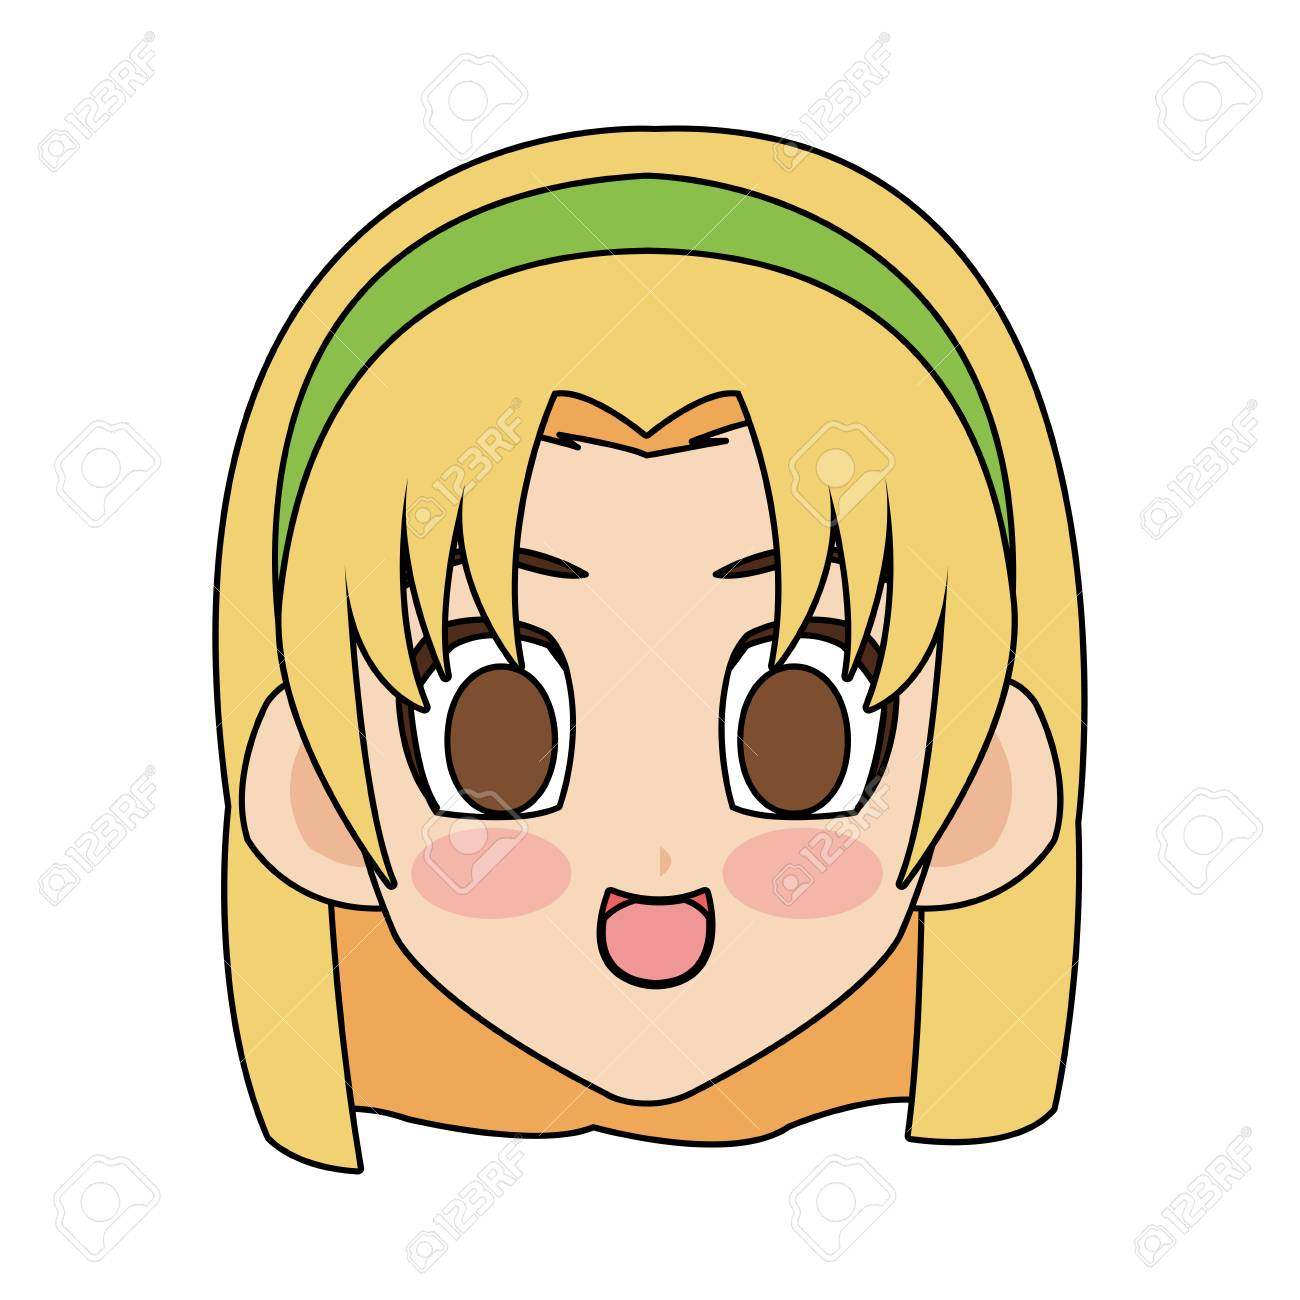 Face Of Cute Anime Or Manga Girl With Blonde Hair And Brown Eyes